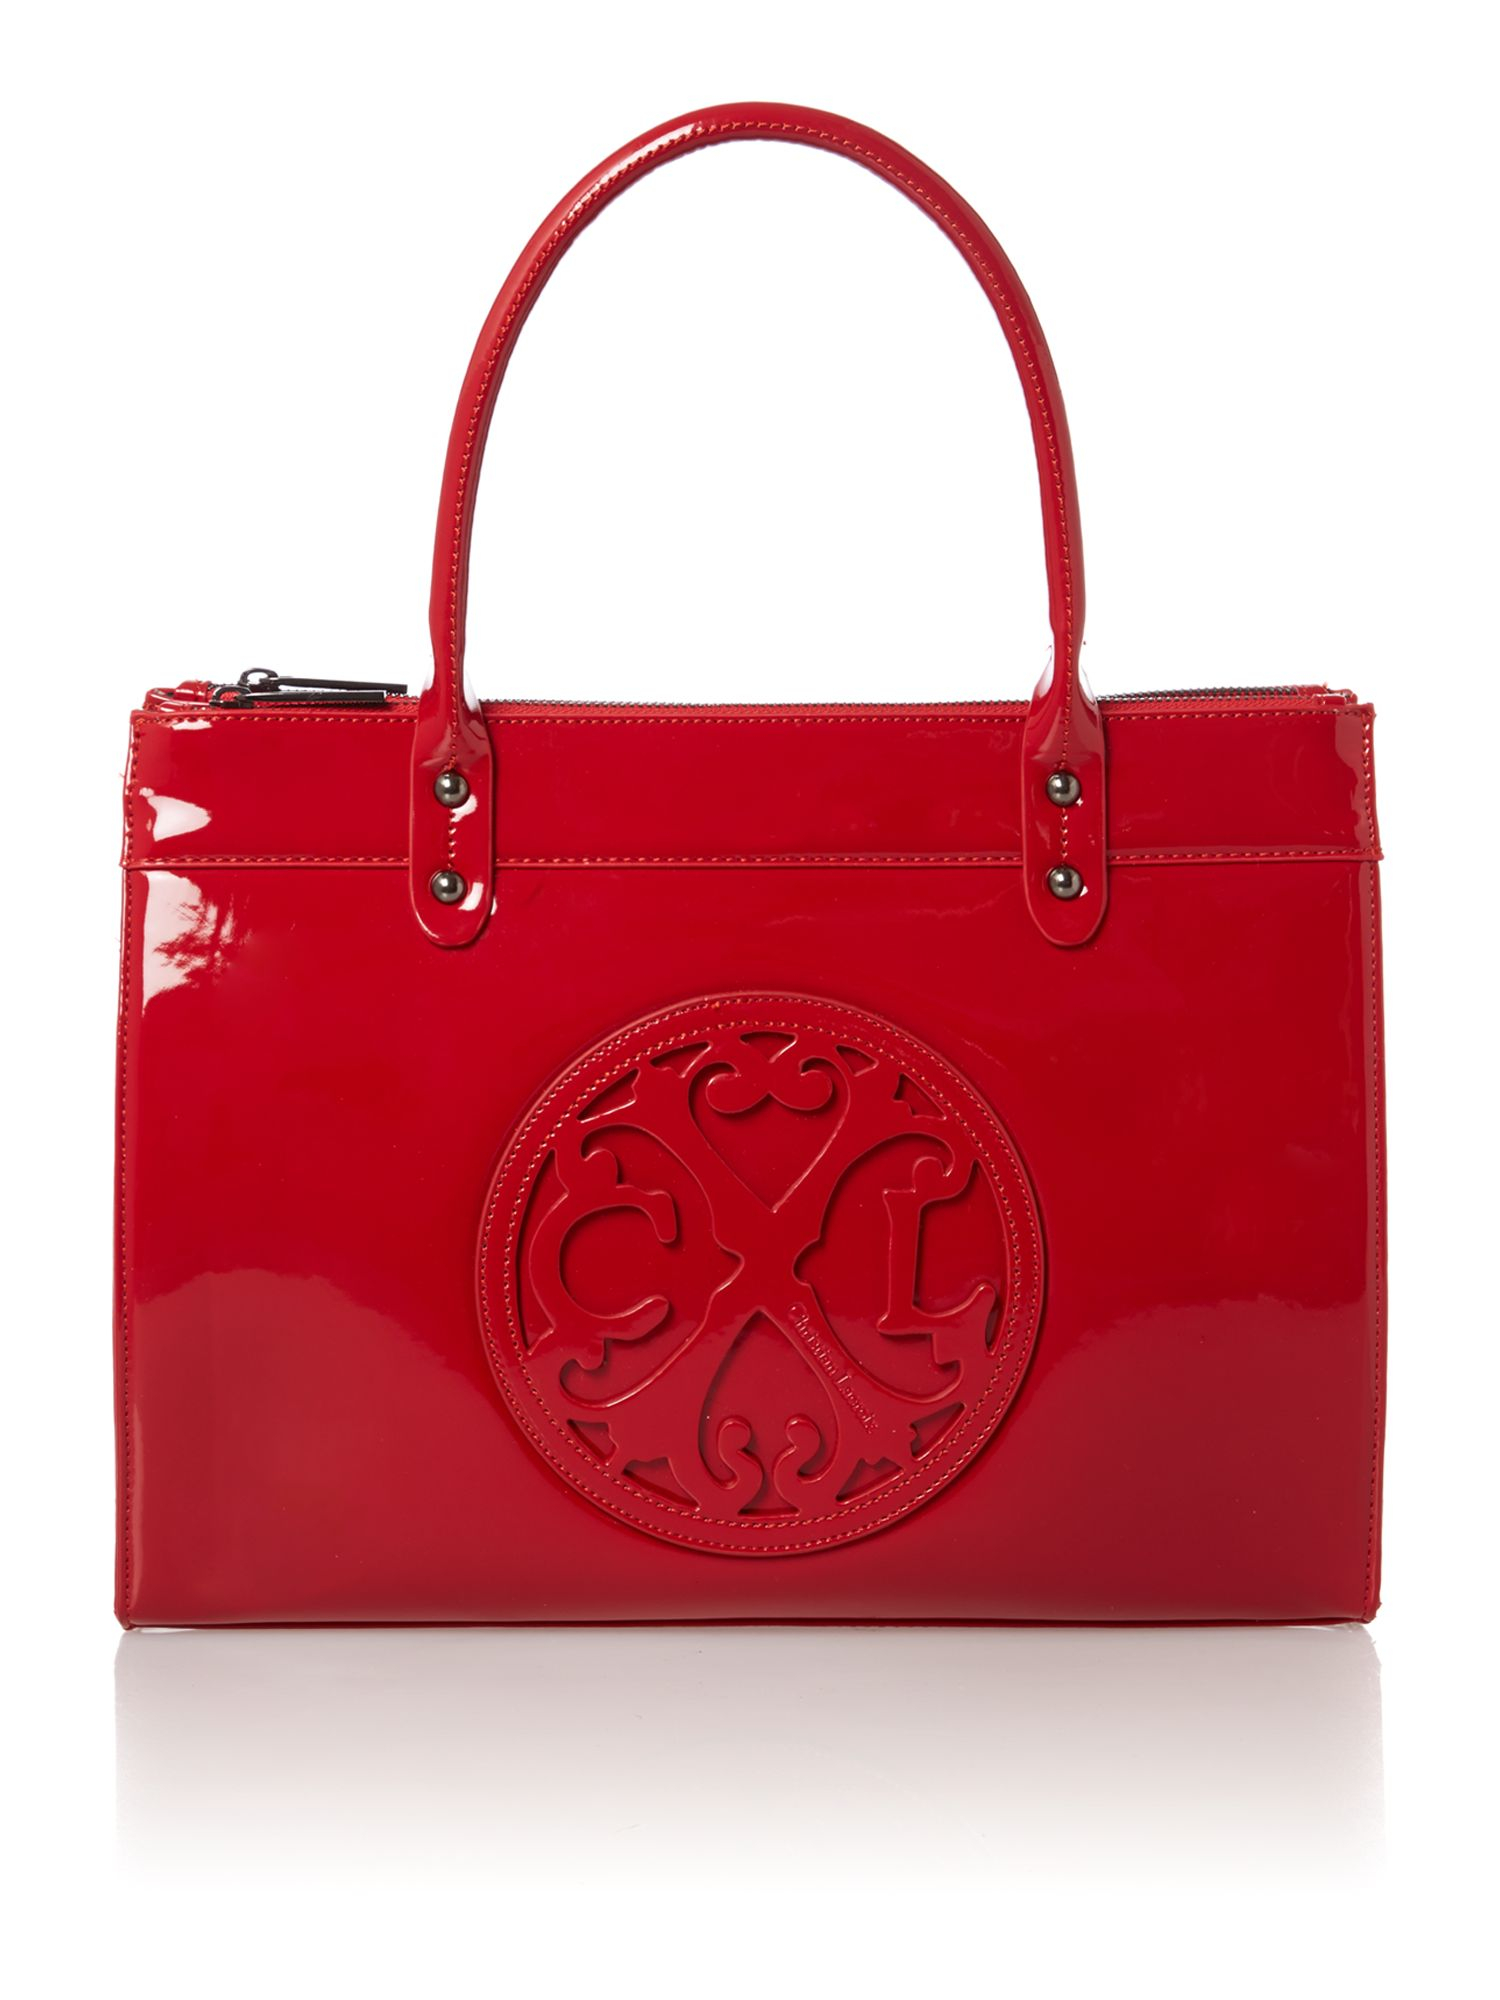 Christian Lacroix Jonc Red Patent Tote Bag in Red